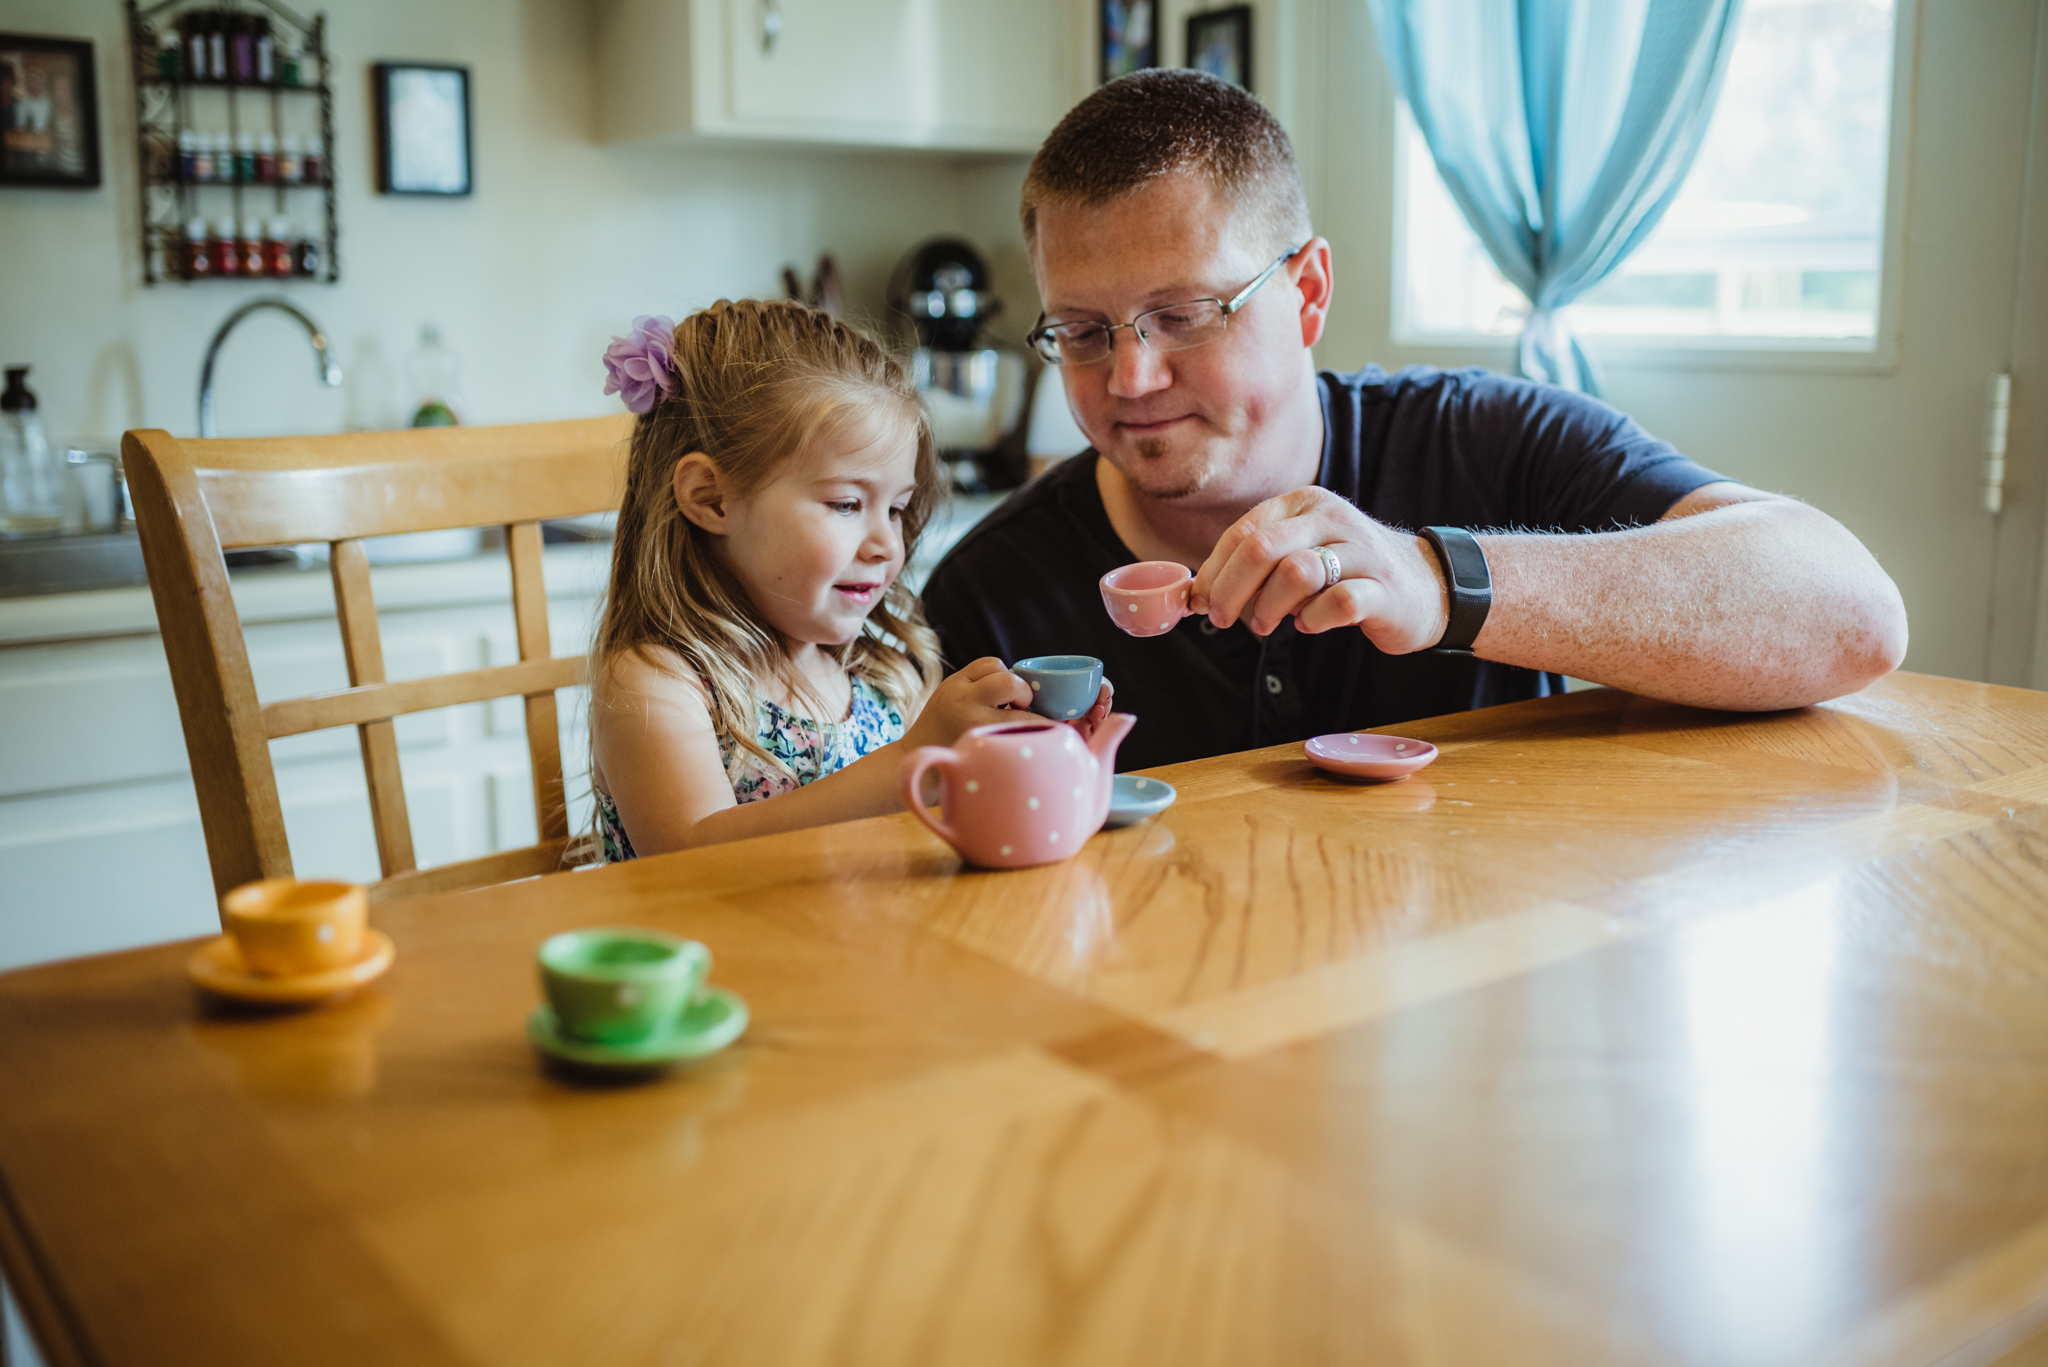 The little girl and Dad have tea time in the kitchen during their lifestyle session at home in Wake Forest with Rose Trail Images.